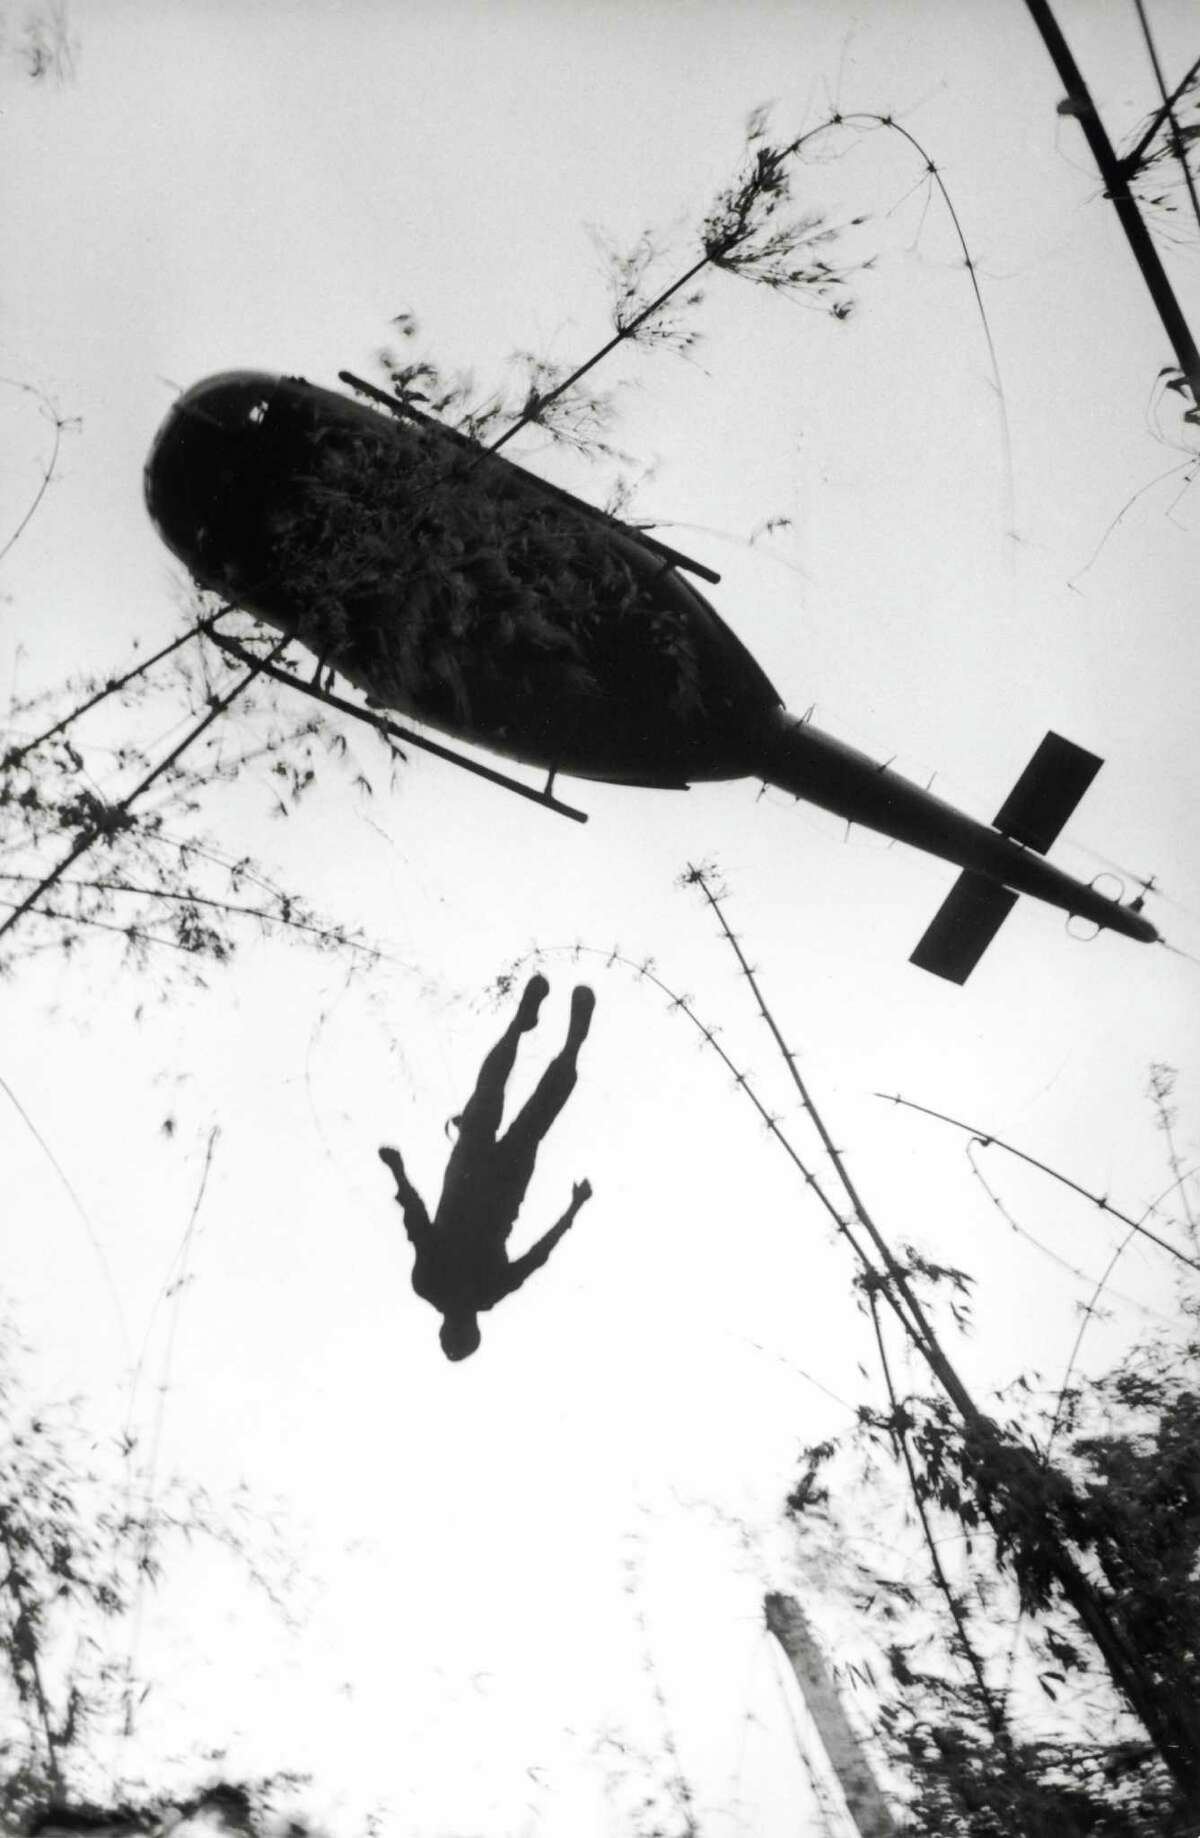 """From """"WAR/PHOTOGRAPHY: Photographs of Armed Conflict and Its Aftermath"""", at the Museum of Fine Arts, Houston Nov. 11 - Feb. 3: Henri Huet, French, 1927-1971 The body of an American paratrooper killed in action in the jungle near the Cambodian border is raised up to an evacuation helicopter, Vietnam 1966 Gelatin silver print, printed 2004 The Museum of Fine Arts, Houston, museum purchase AP/Wide World Photos"""